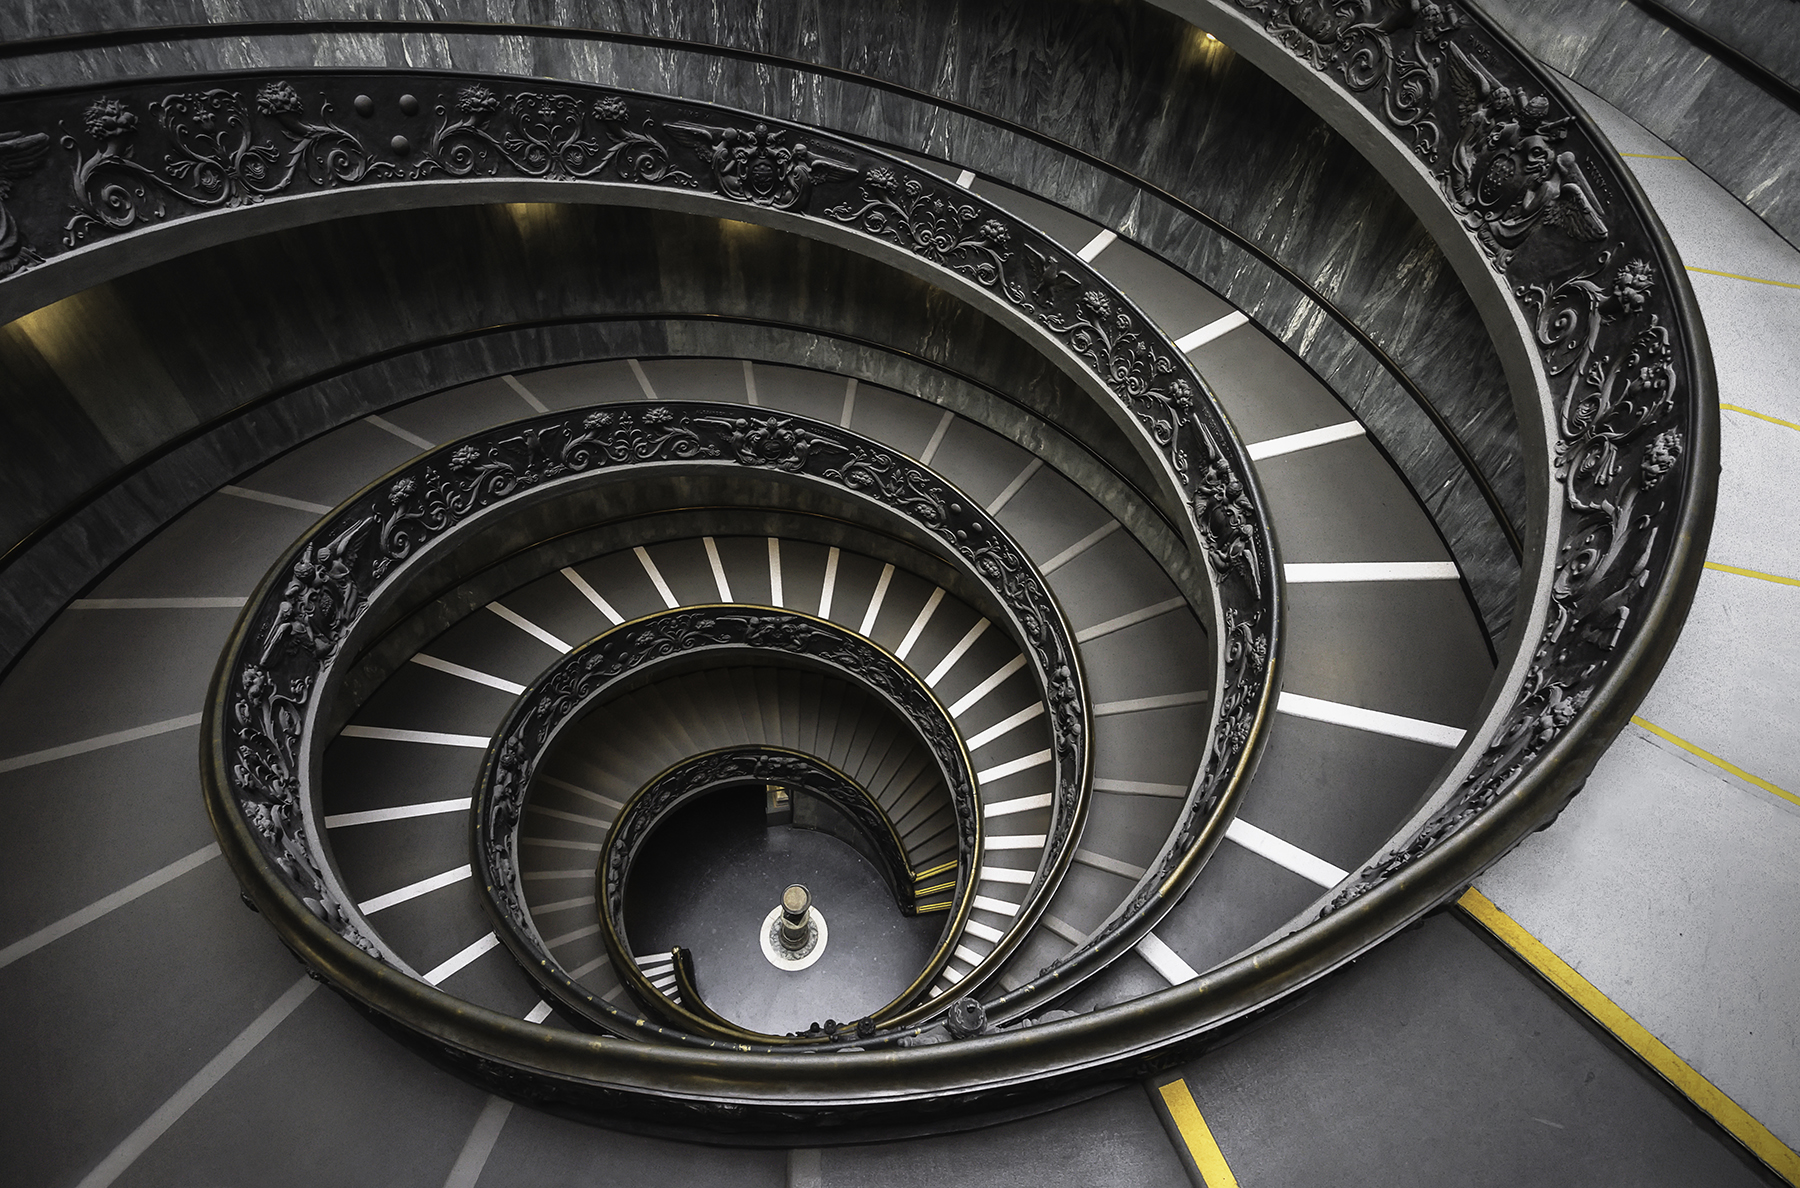 Vatican museum spiral staircase, Italy